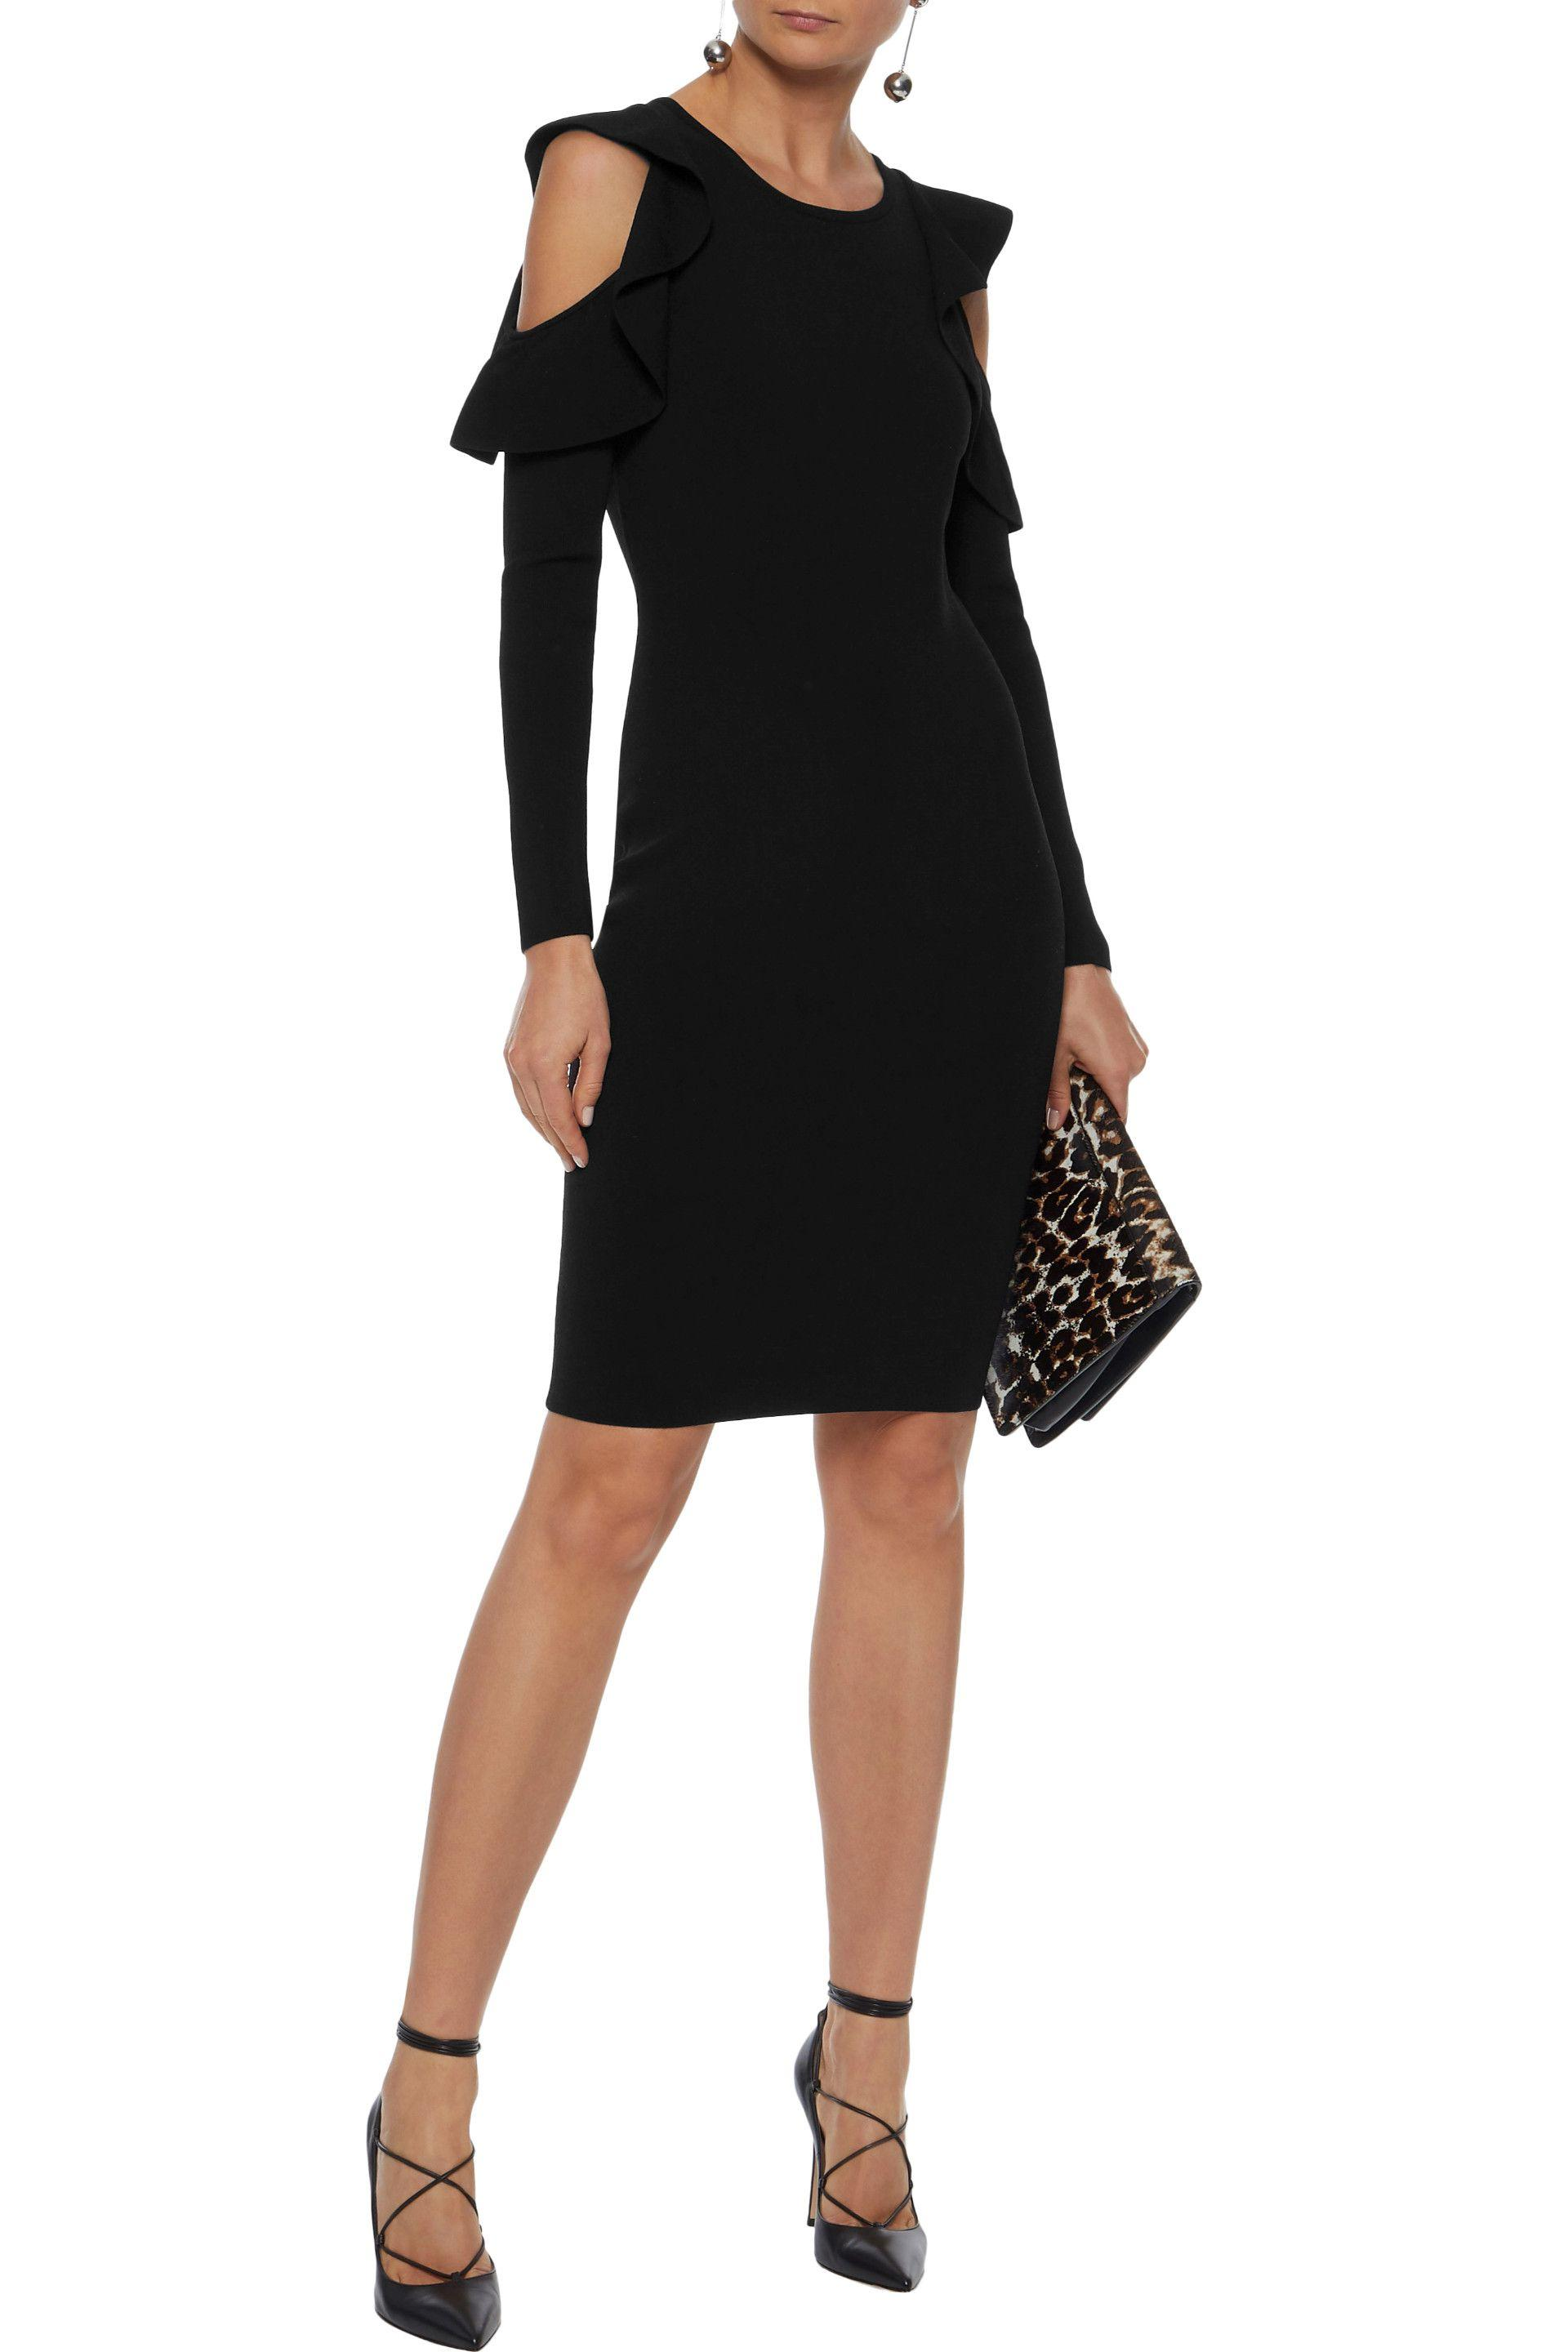 a34c744a3371 MILLY - Woman Cold-shoulder Ruffle-trimmed Stretch-knit Dress Black - Lyst.  View fullscreen